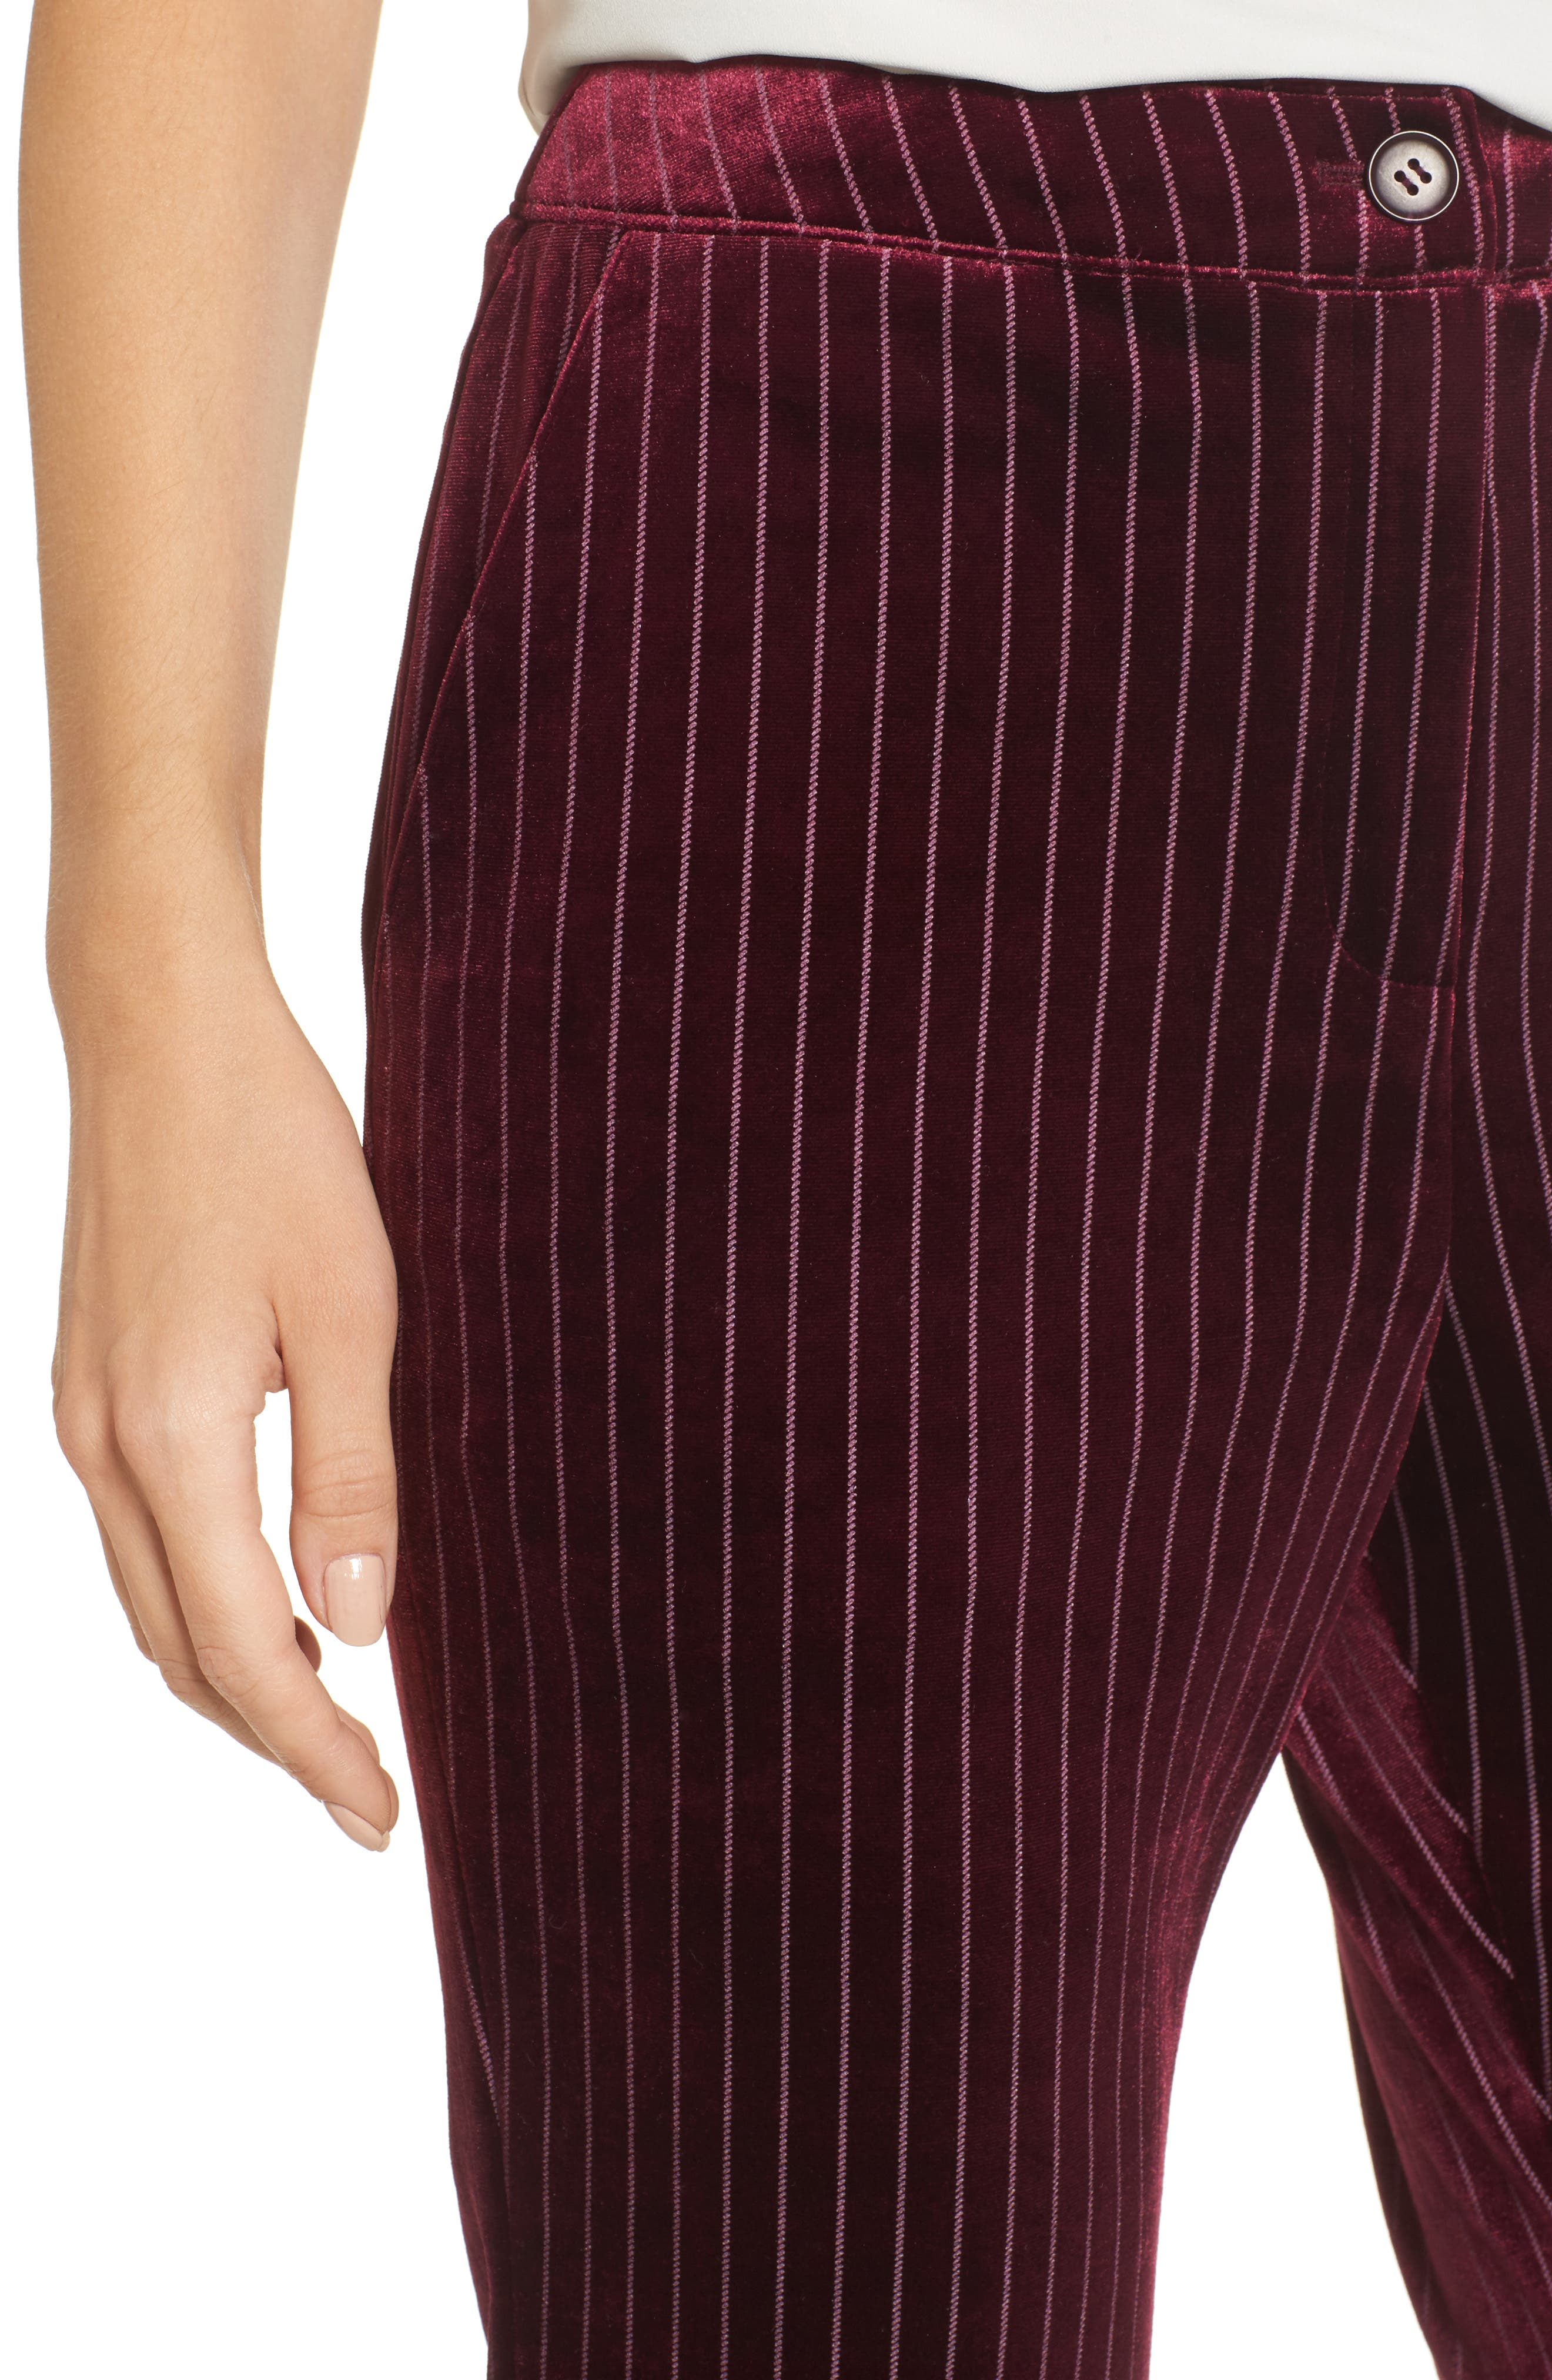 Velour Ankle Trousers,                             Alternate thumbnail 4, color,                             Red Tannin Dotted Stripe